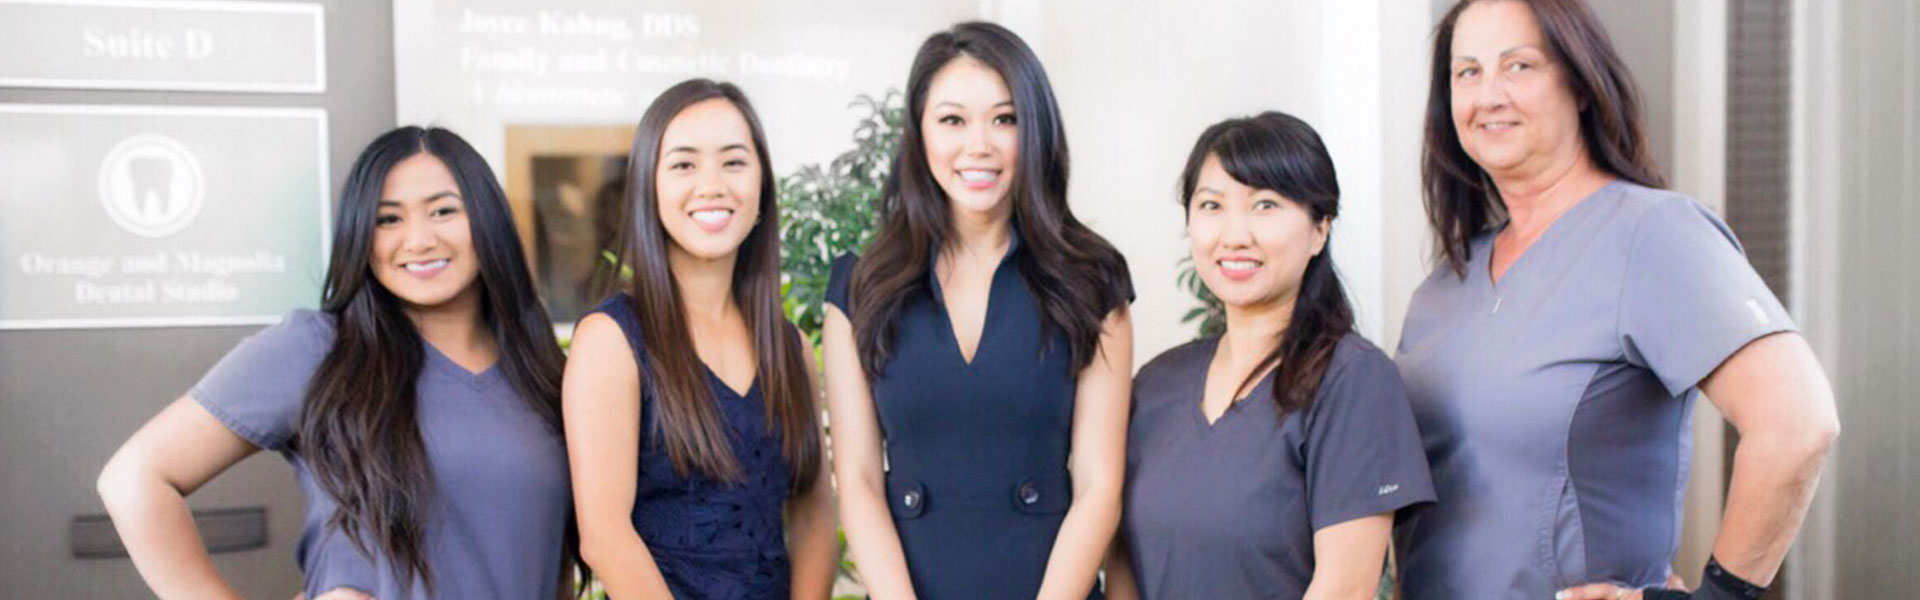 Dr. Joyce Kahng and team